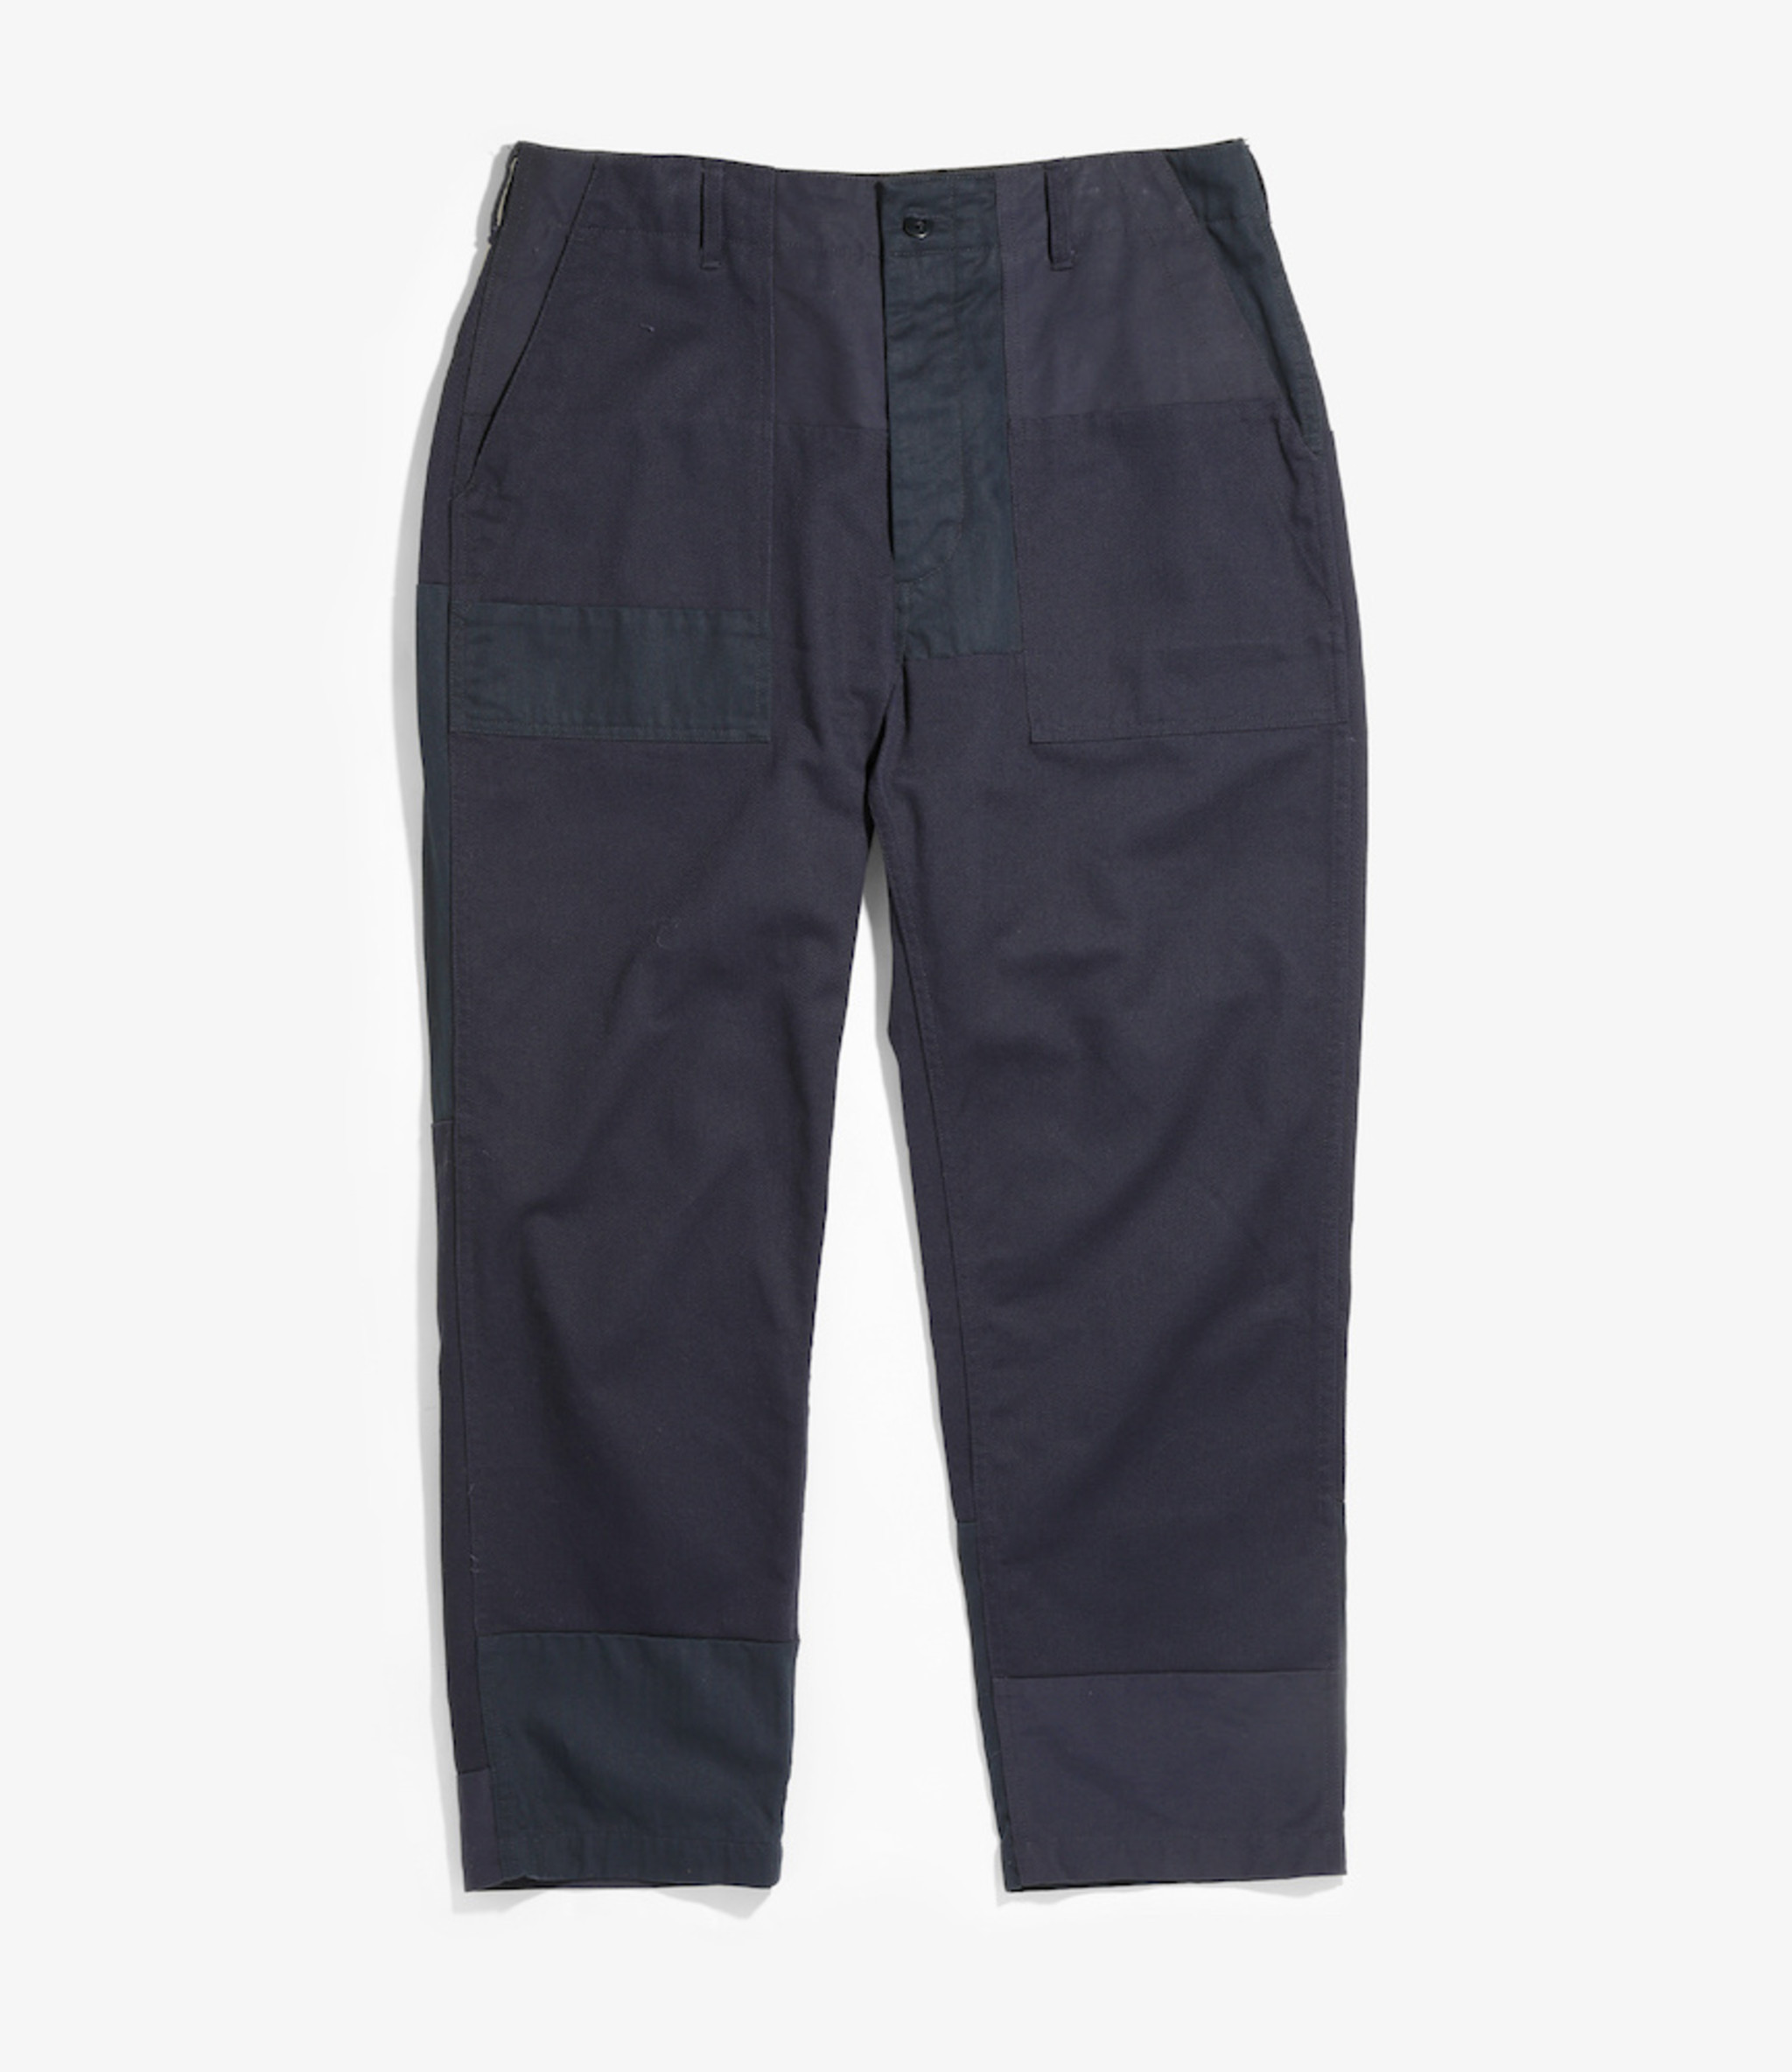 Engineered Garments Fatigue Pant - Dark Navy Cotton Heavy Twill